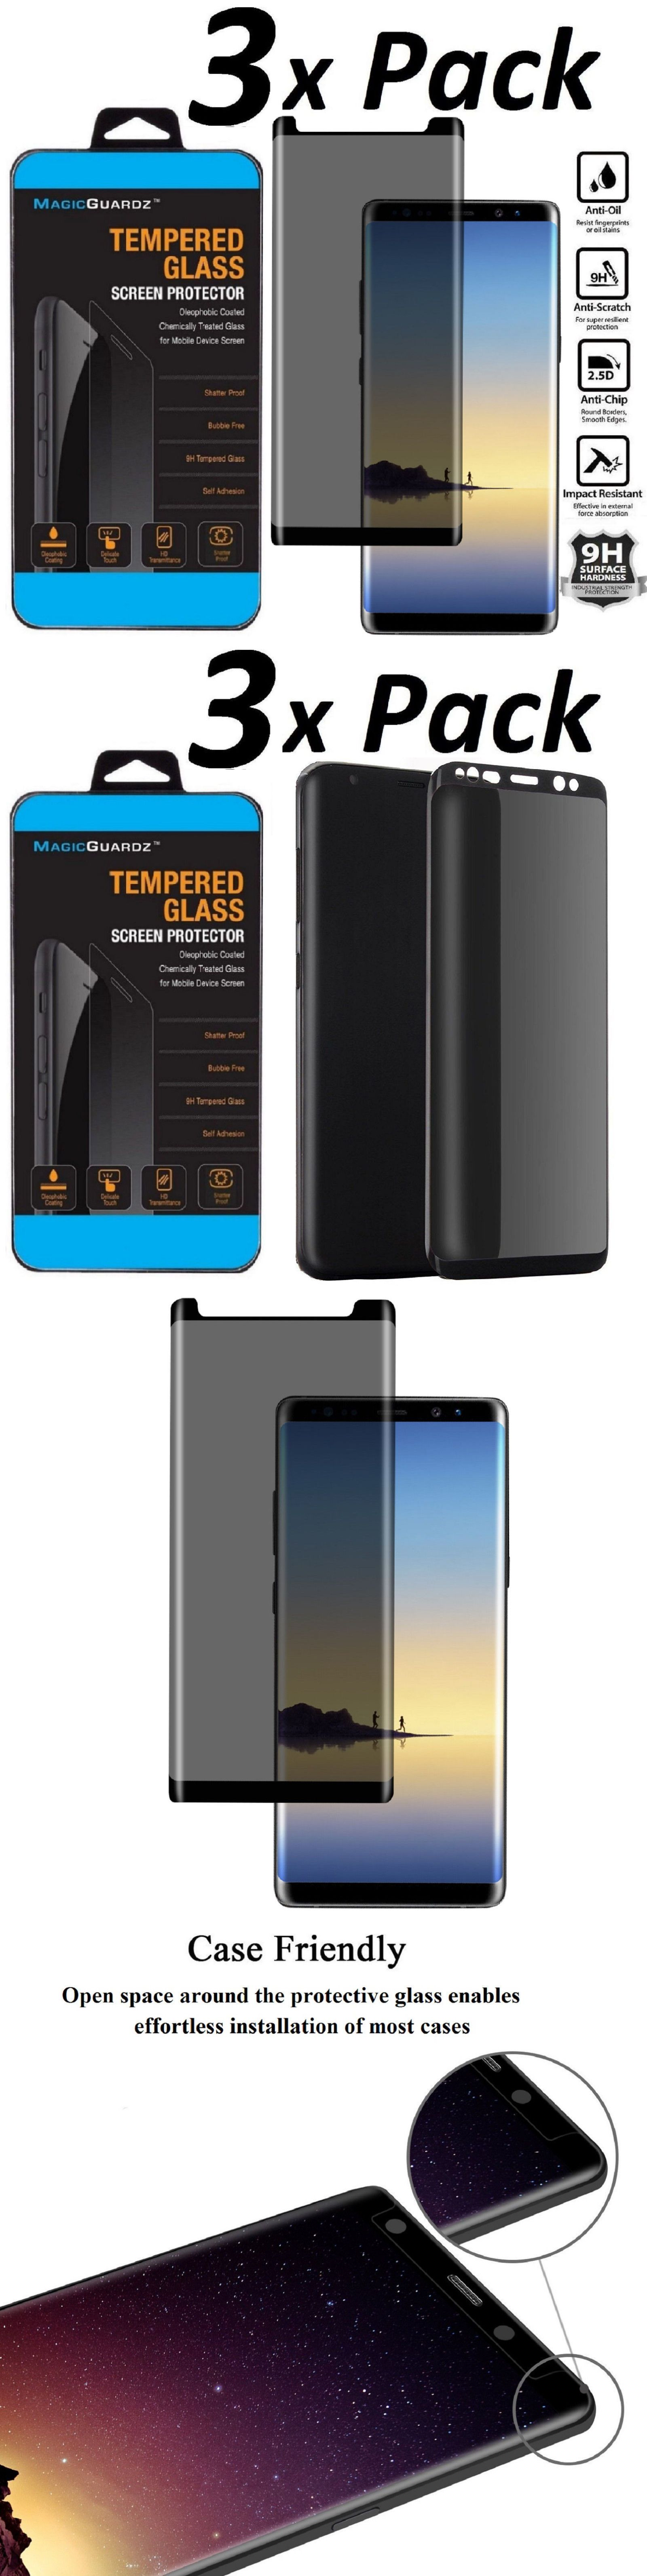 Details About Privacy Screen Protector Tempered Glass For Samsung Galaxy S8 S9 Plus Note 8 9 Privacy Screen Tempered Glass Screen Protector Screen Protector